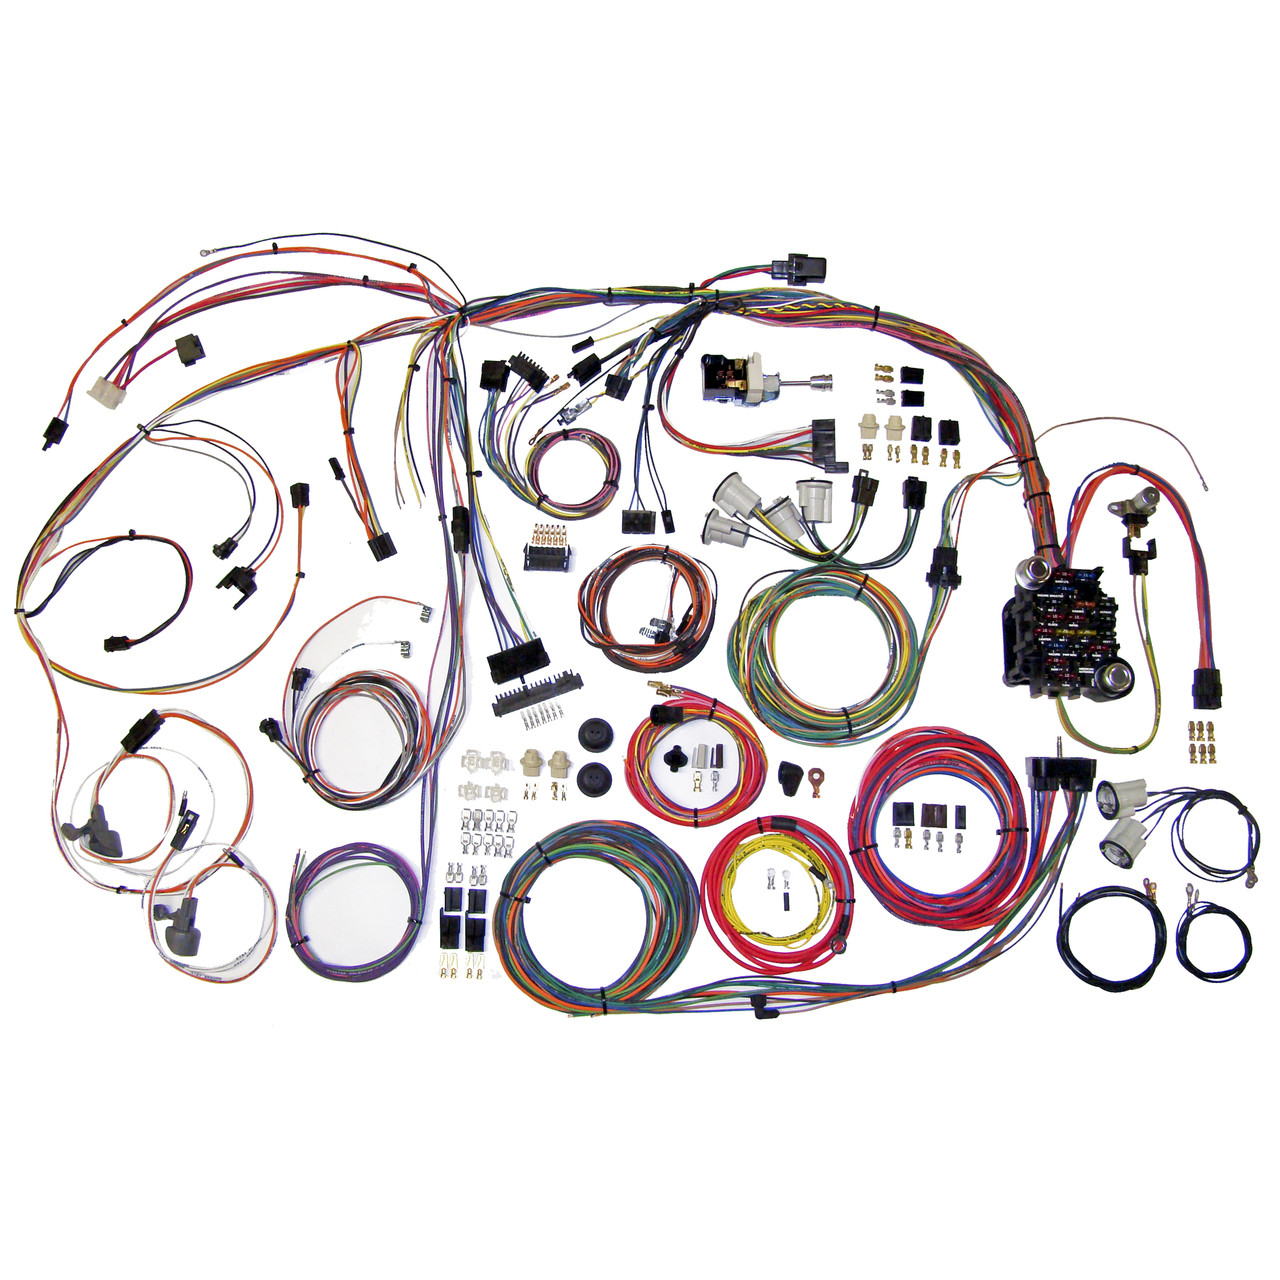 medium resolution of american autowire 1970 1972 chevrolet chevelle el camino classic 19701972 chevelle complete wiring harness kit 19701972 chevelle